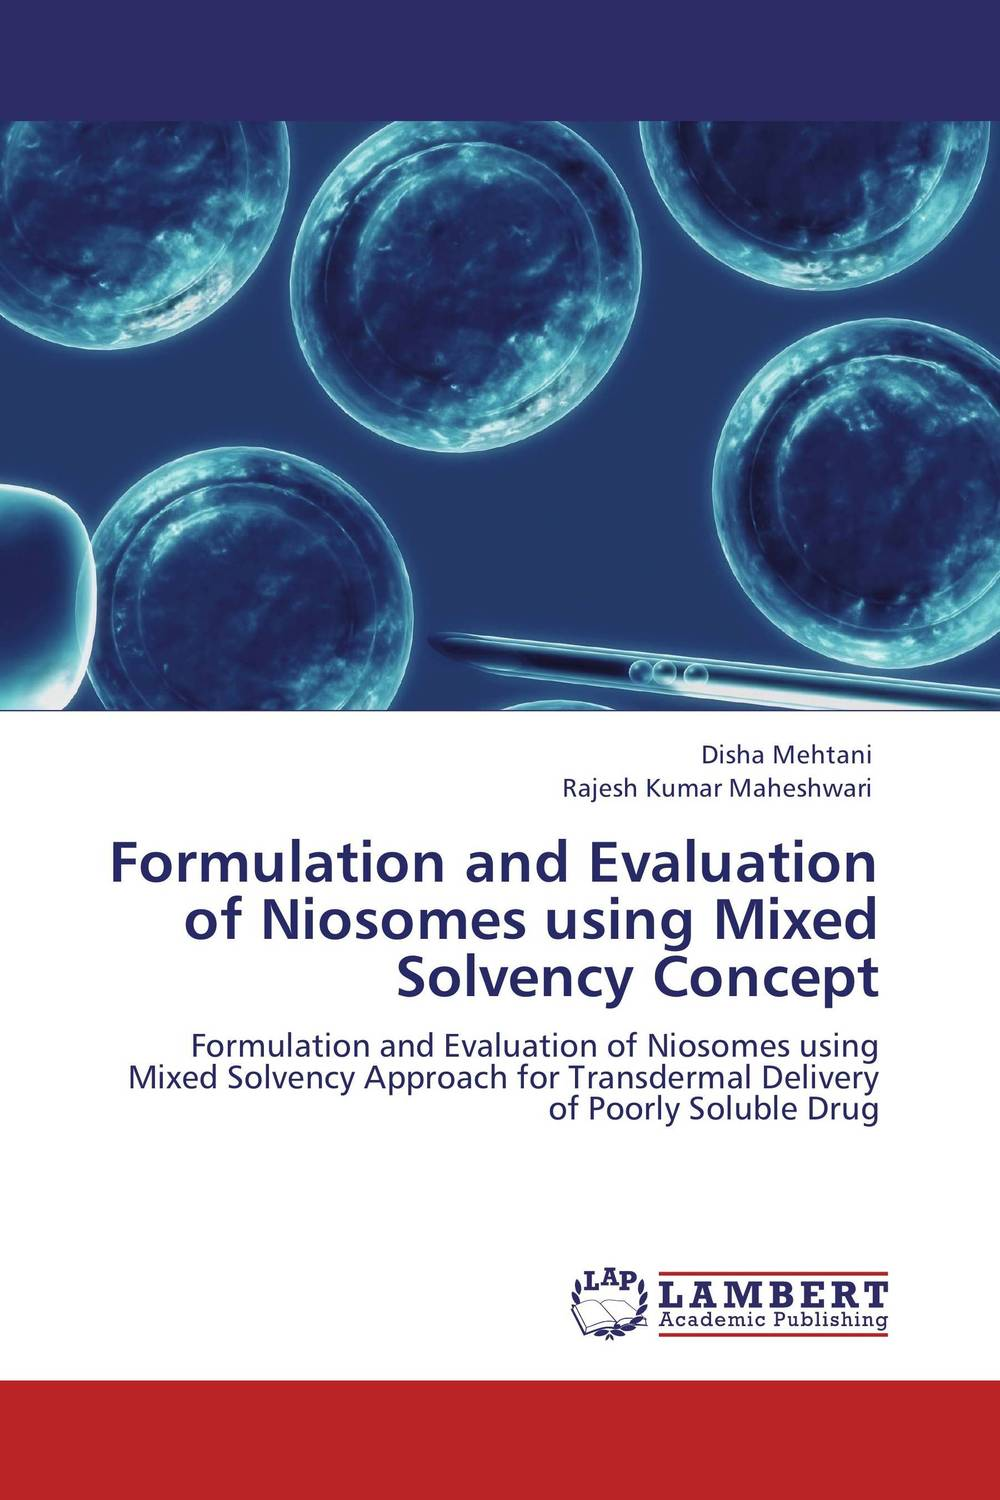 Formulation and Evaluation of Niosomes using Mixed Solvency Concept amita yadav kamal singh rathore and geeta m patel formulation evaluation and optimization of mouth dissolving tablets